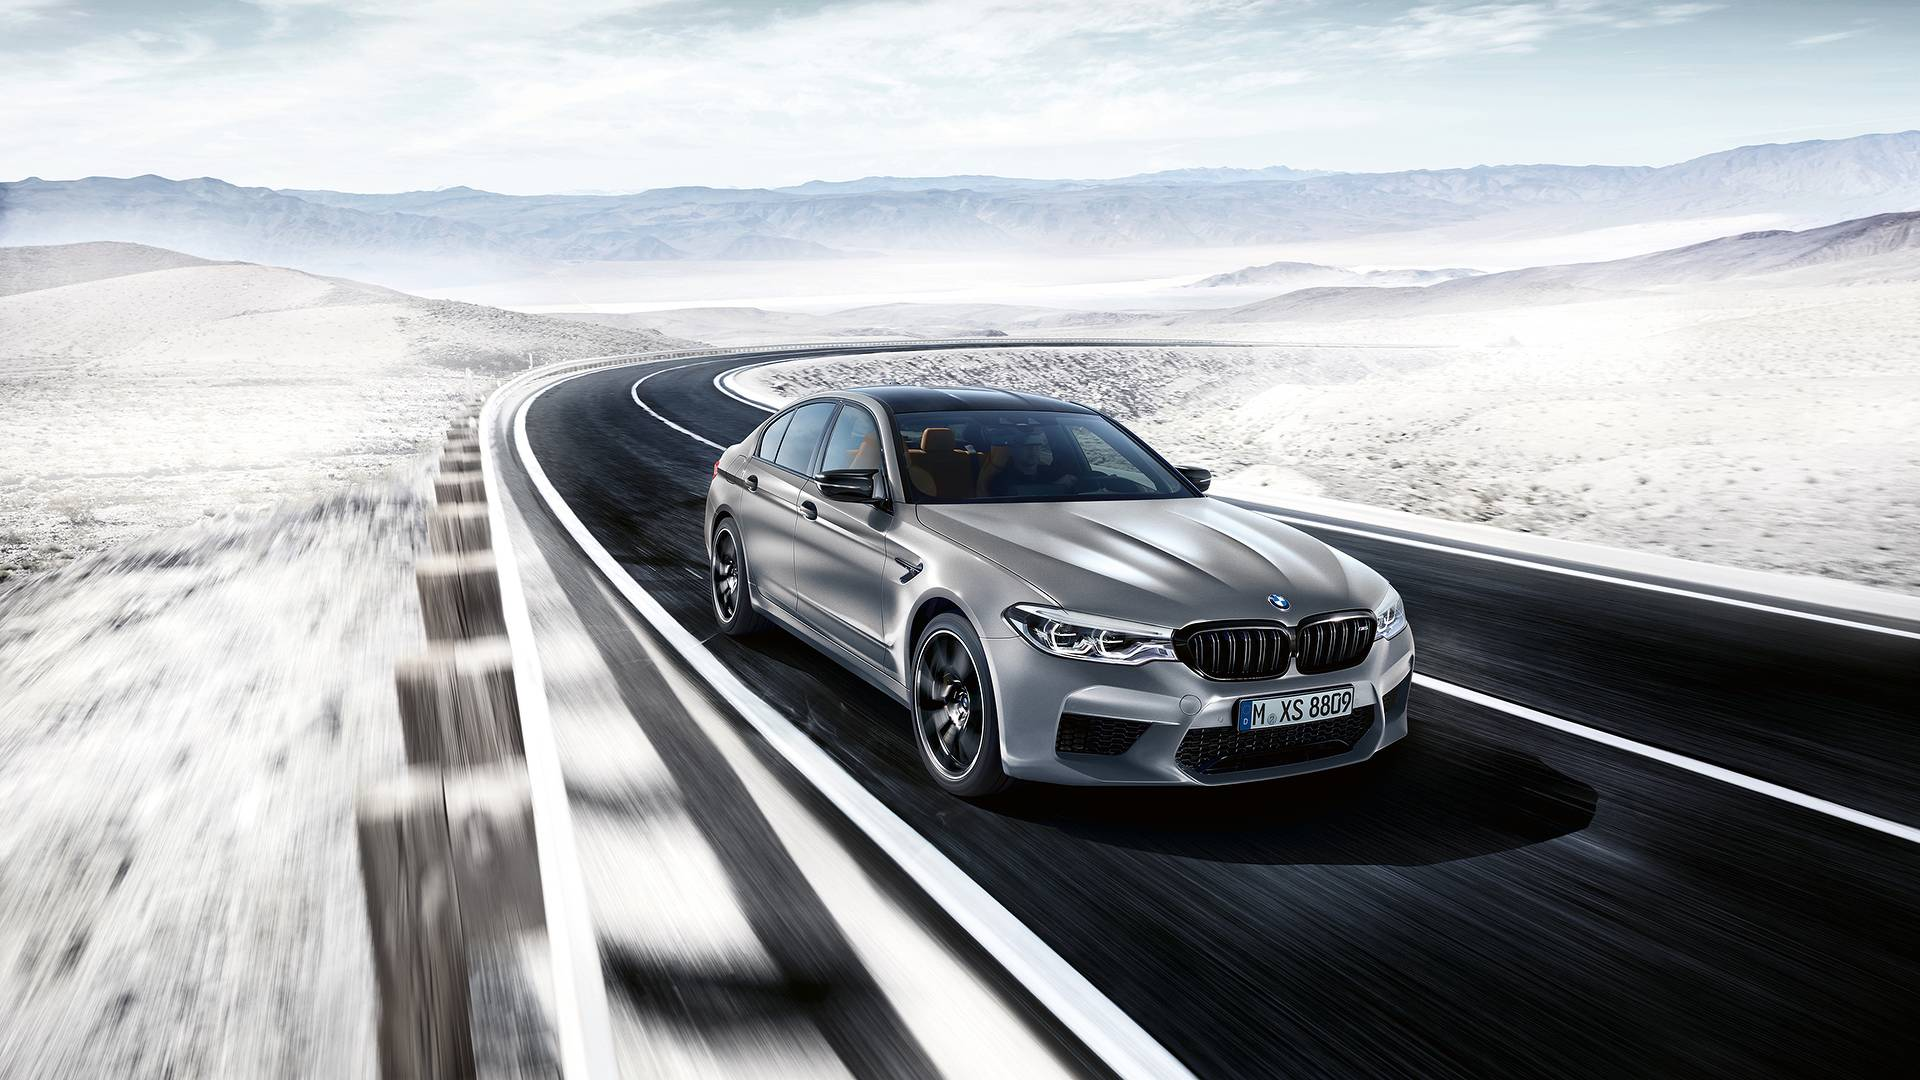 Following a series of intriguing announcements, BMW finally took the veil off the M5 Competition performance sedan